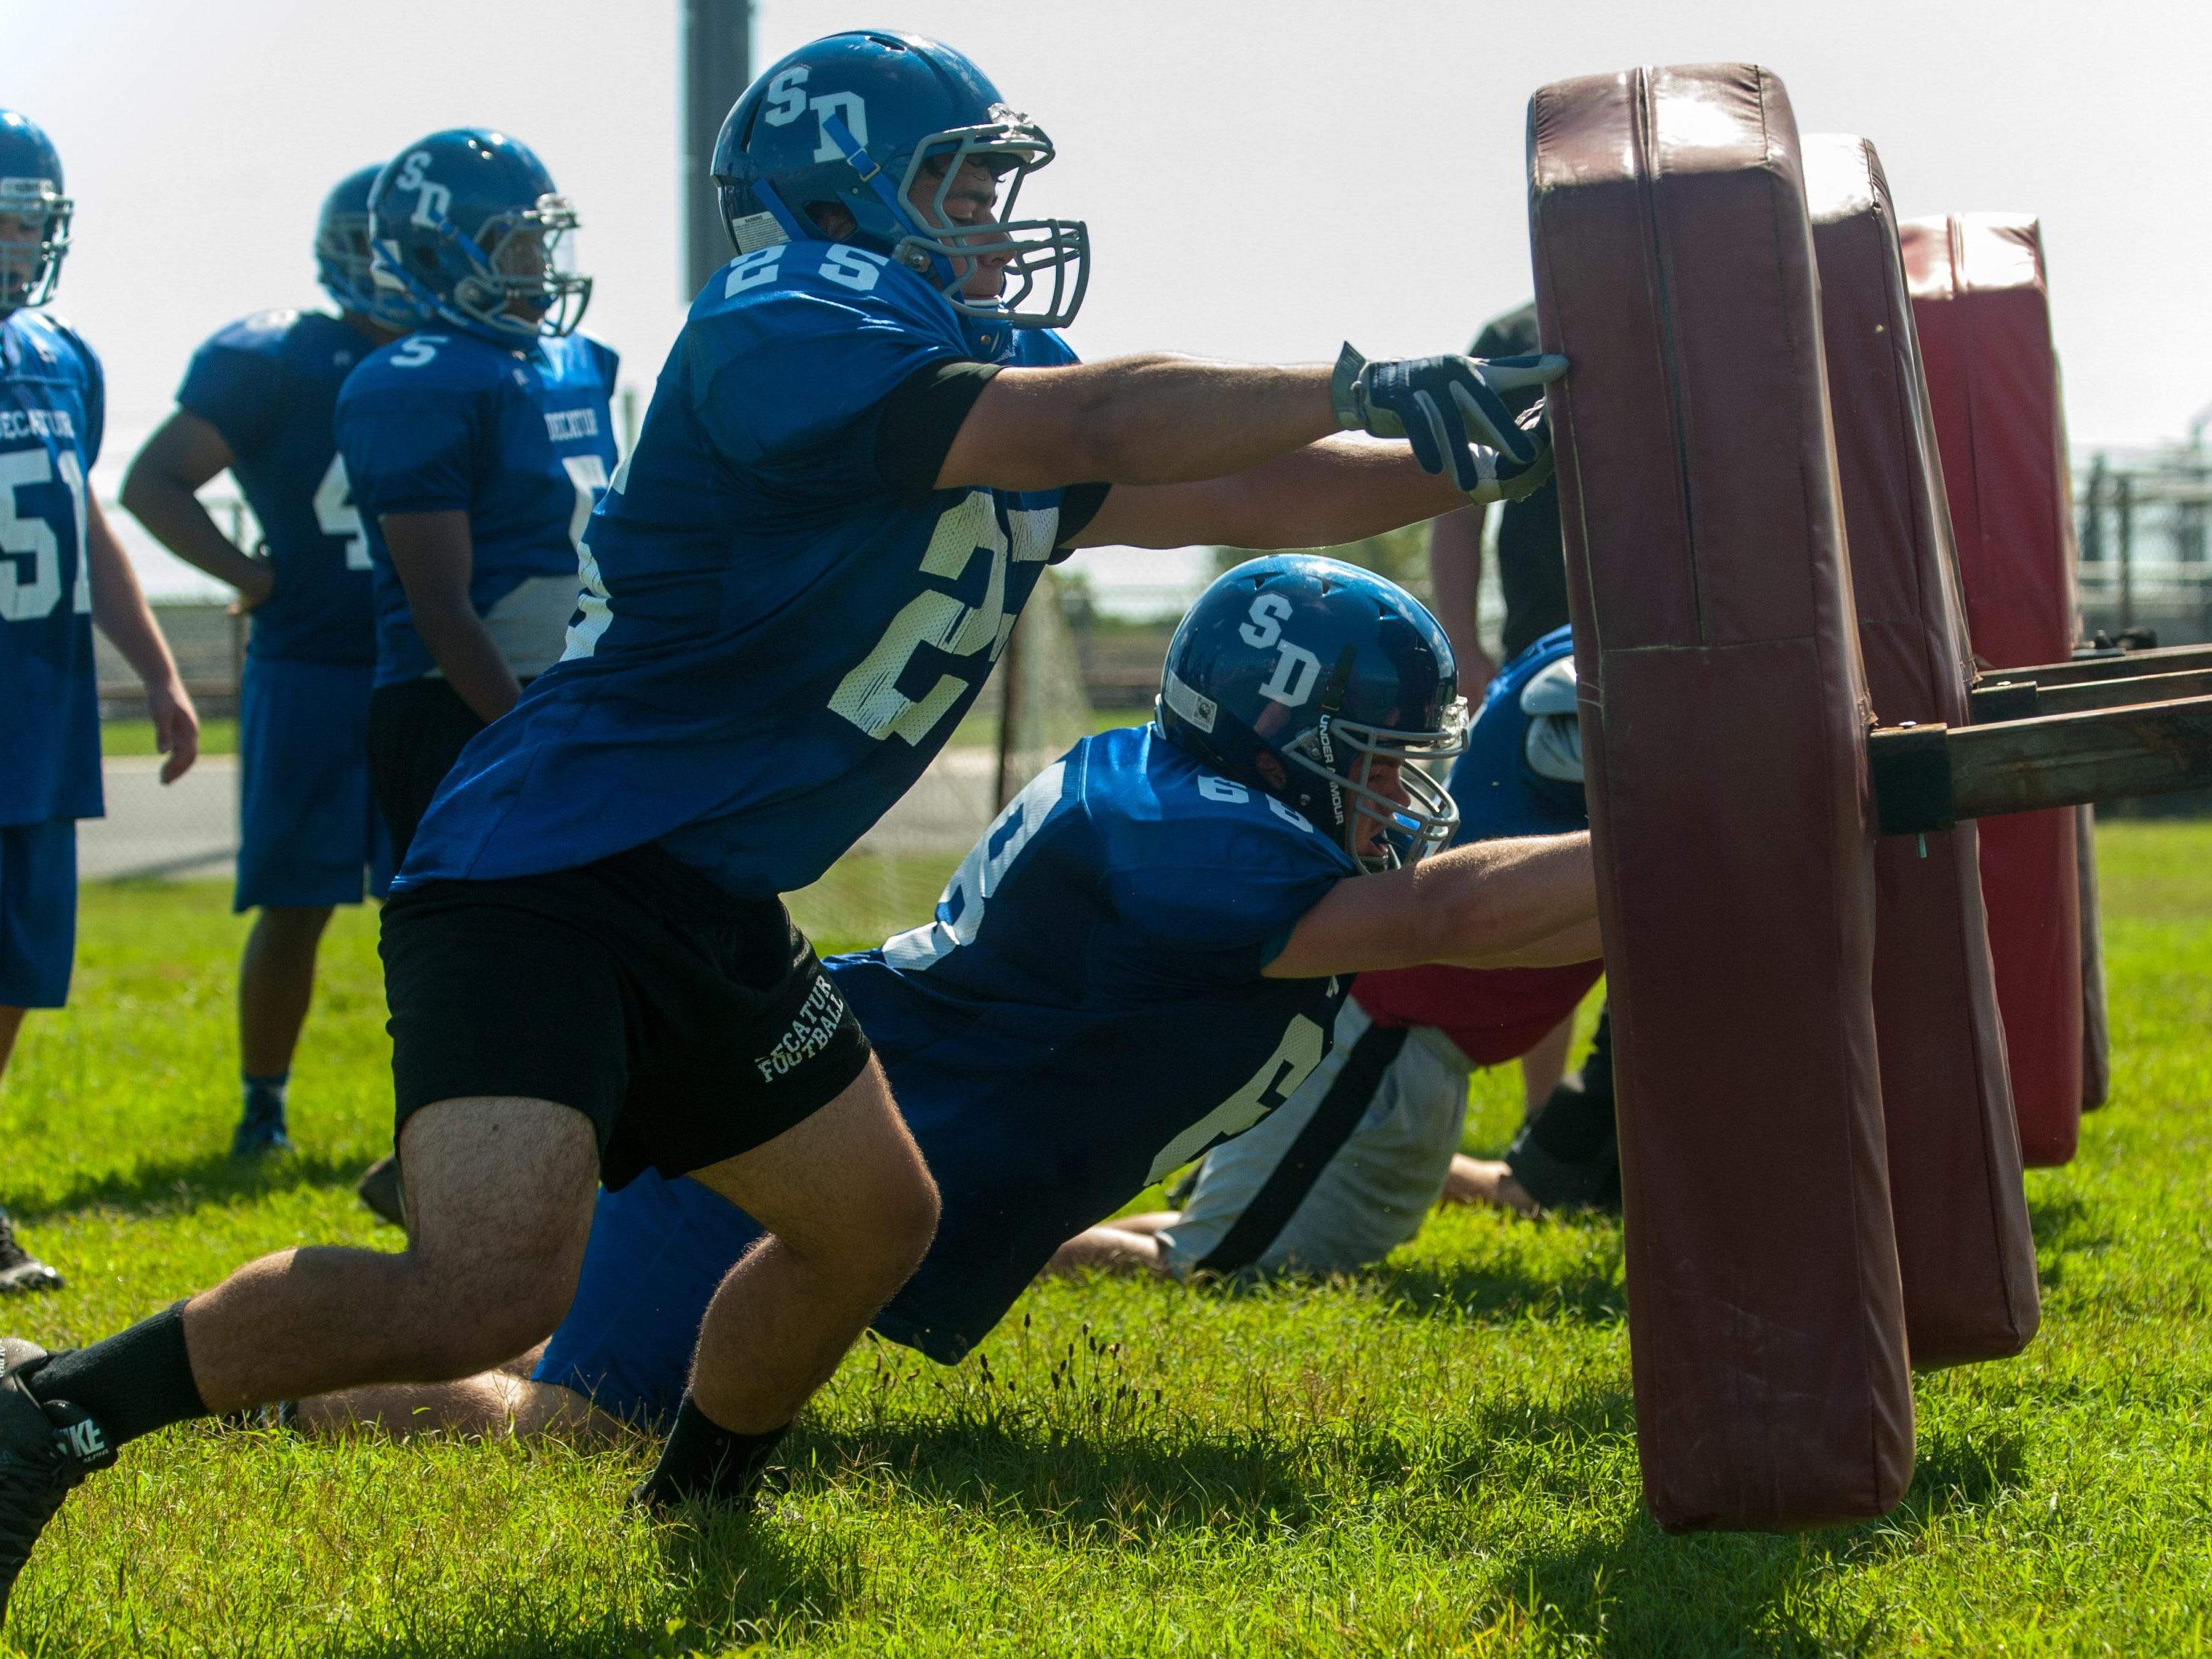 Stephen Decatur linemen work on their punch during practice on Friday morning in Berlin.